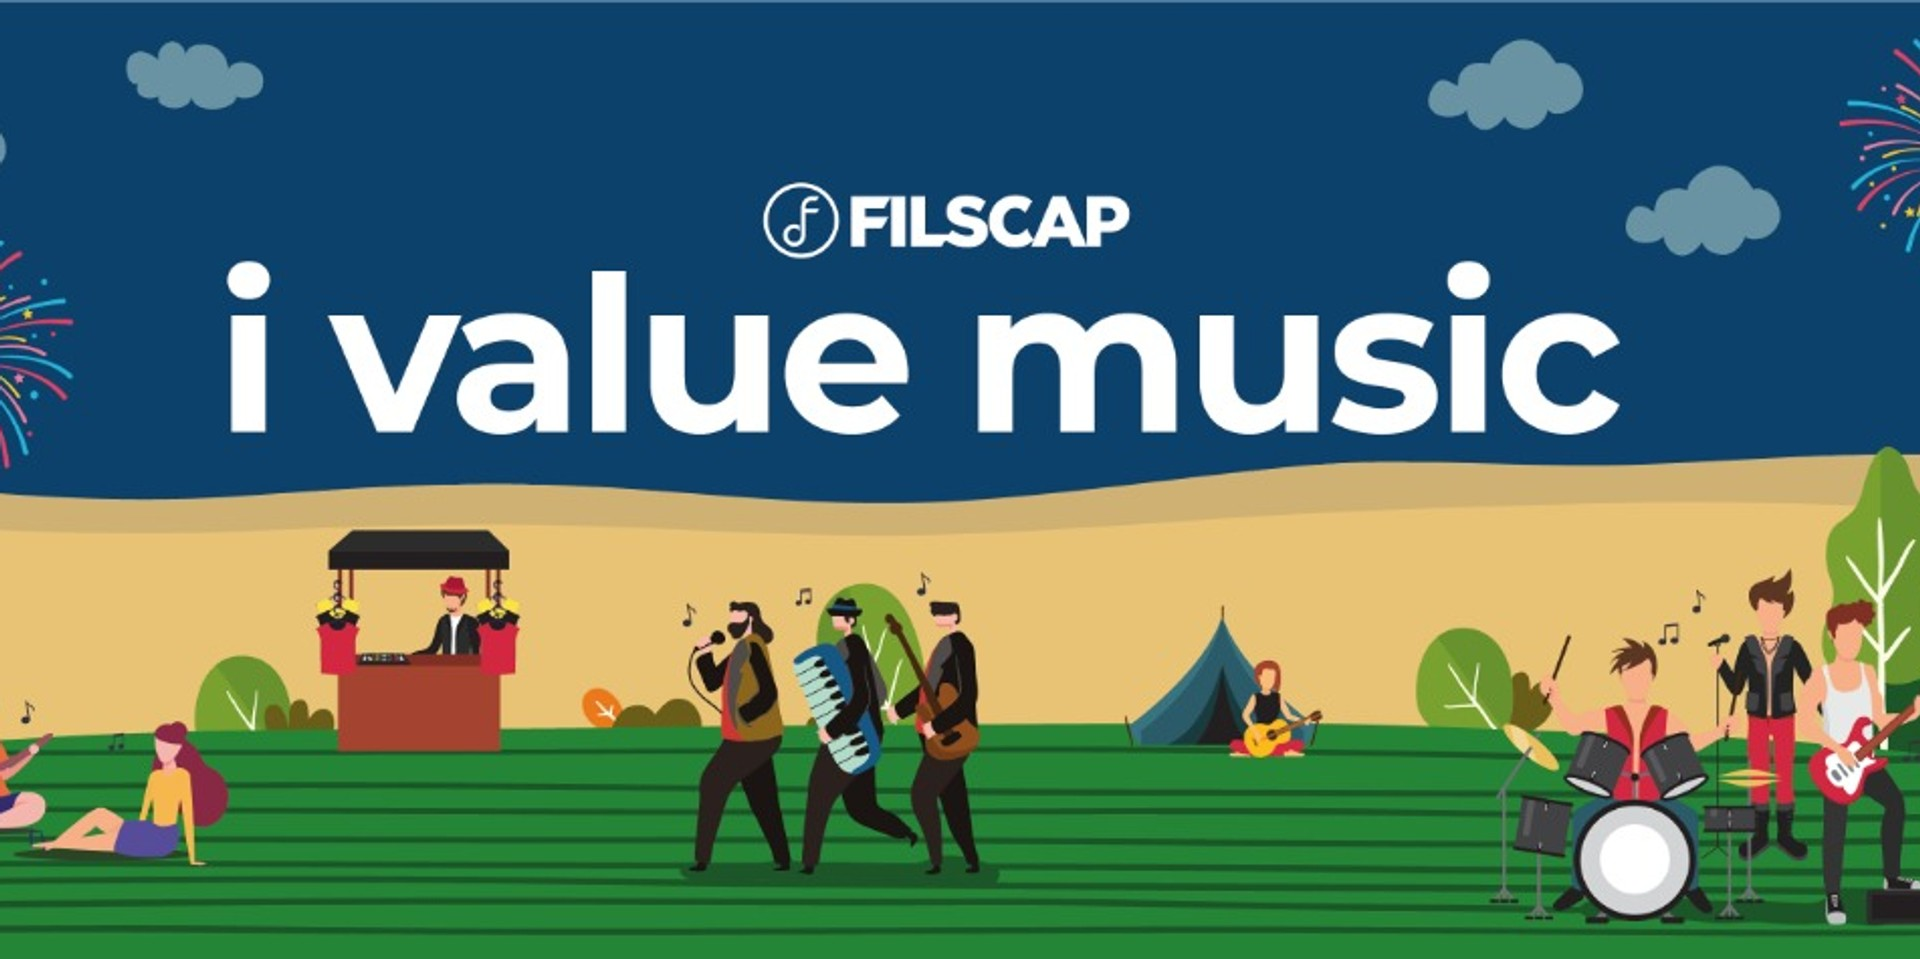 FILSCAP extends financial aid to its members